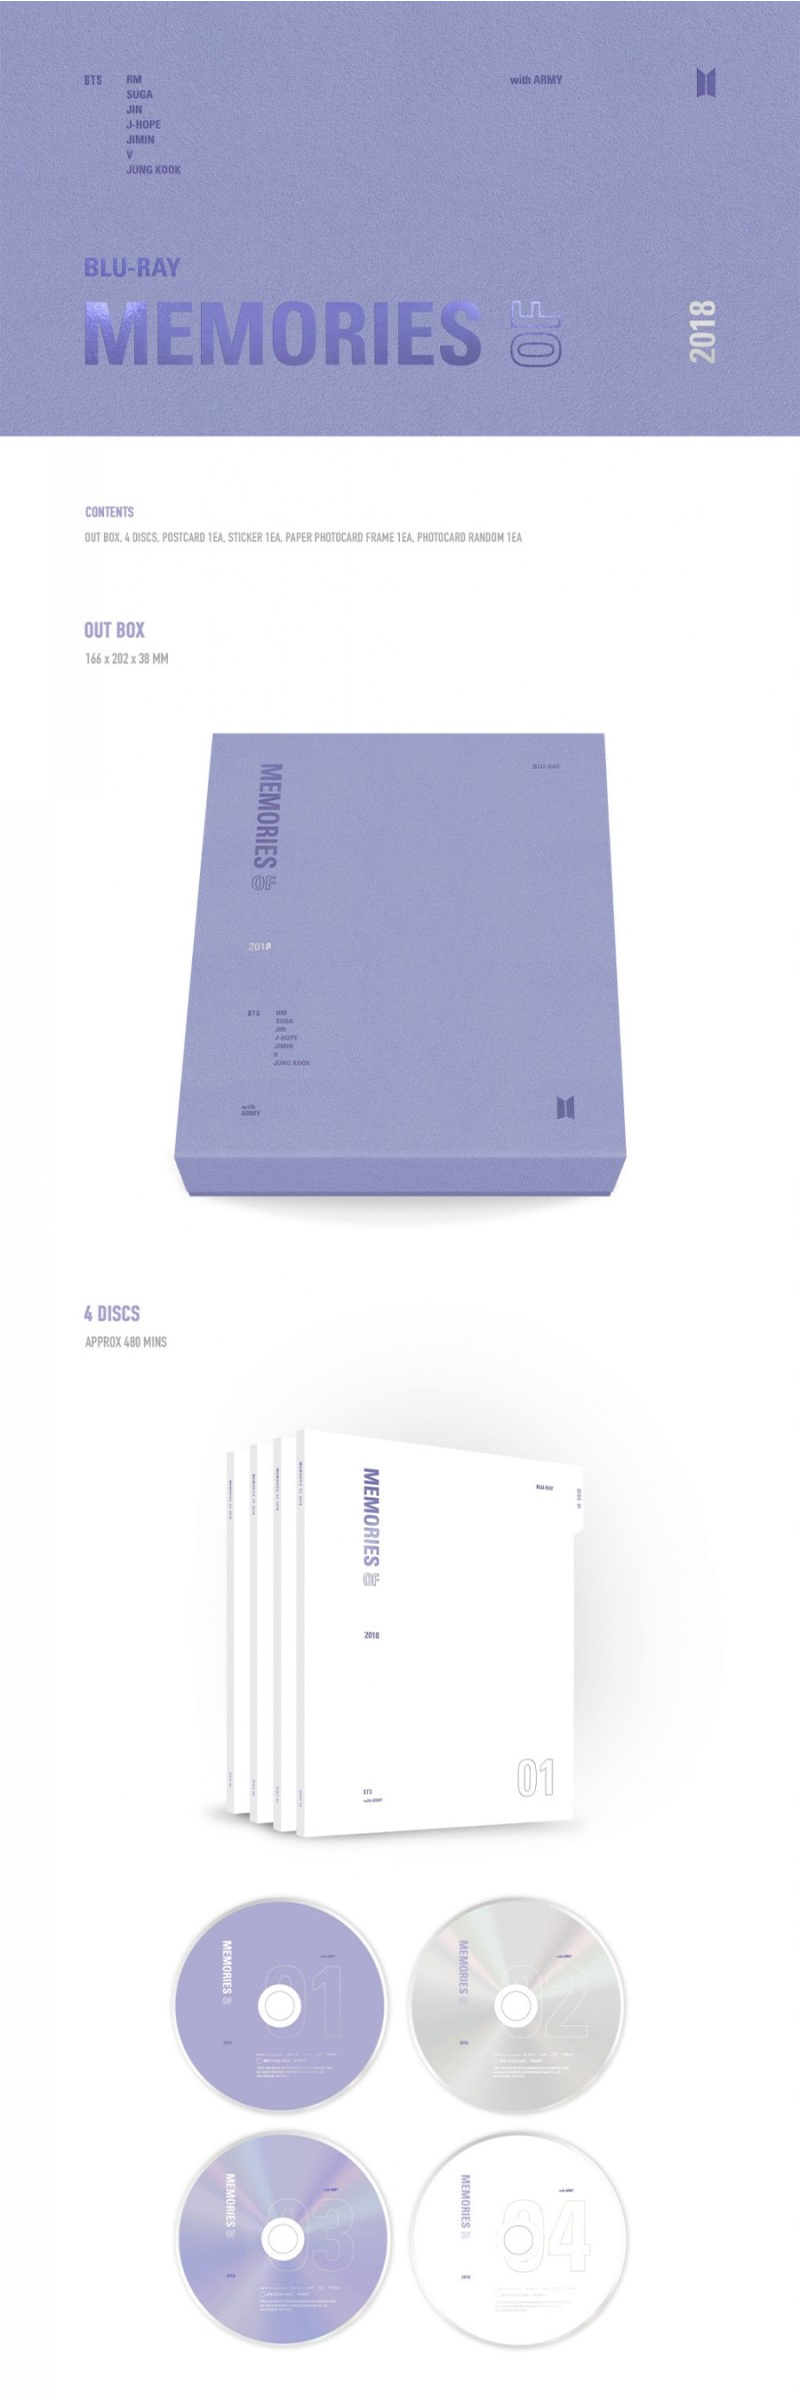 BTS memories 2018 blu-ray